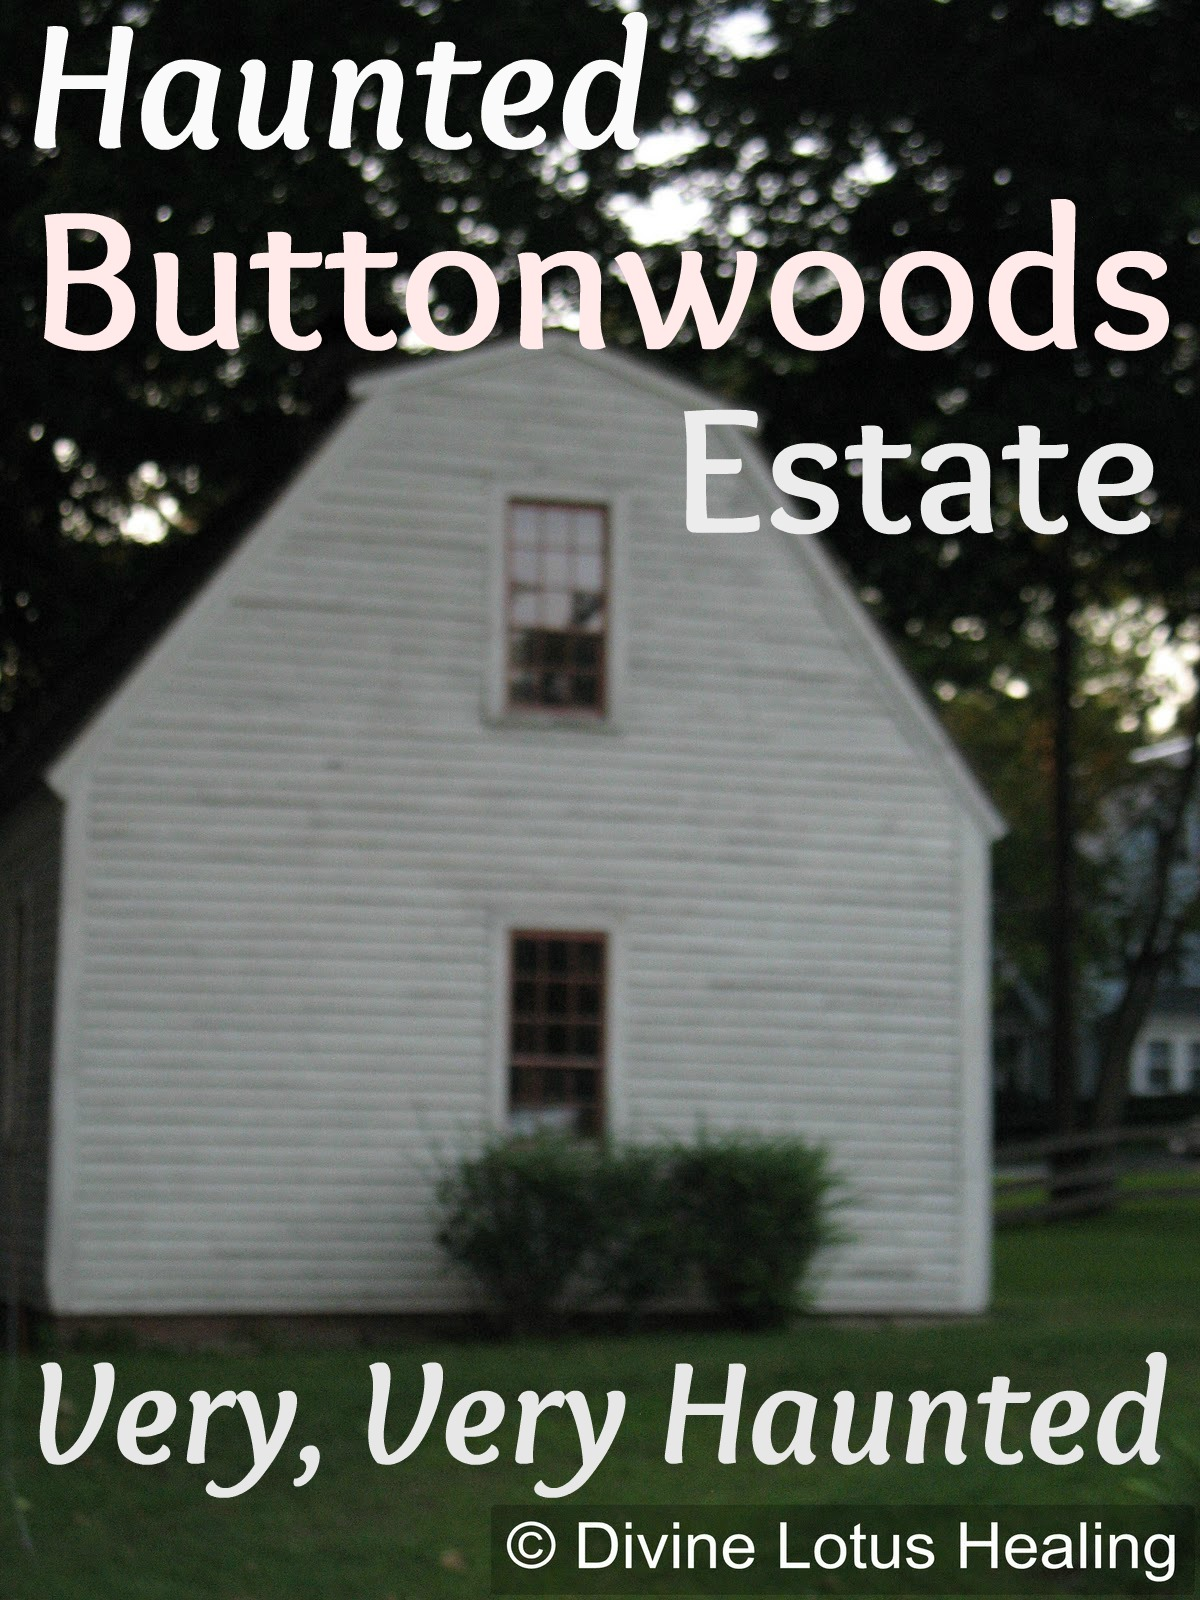 Divine Lotus Healing | The VERY Haunted Buttonwoods Estate